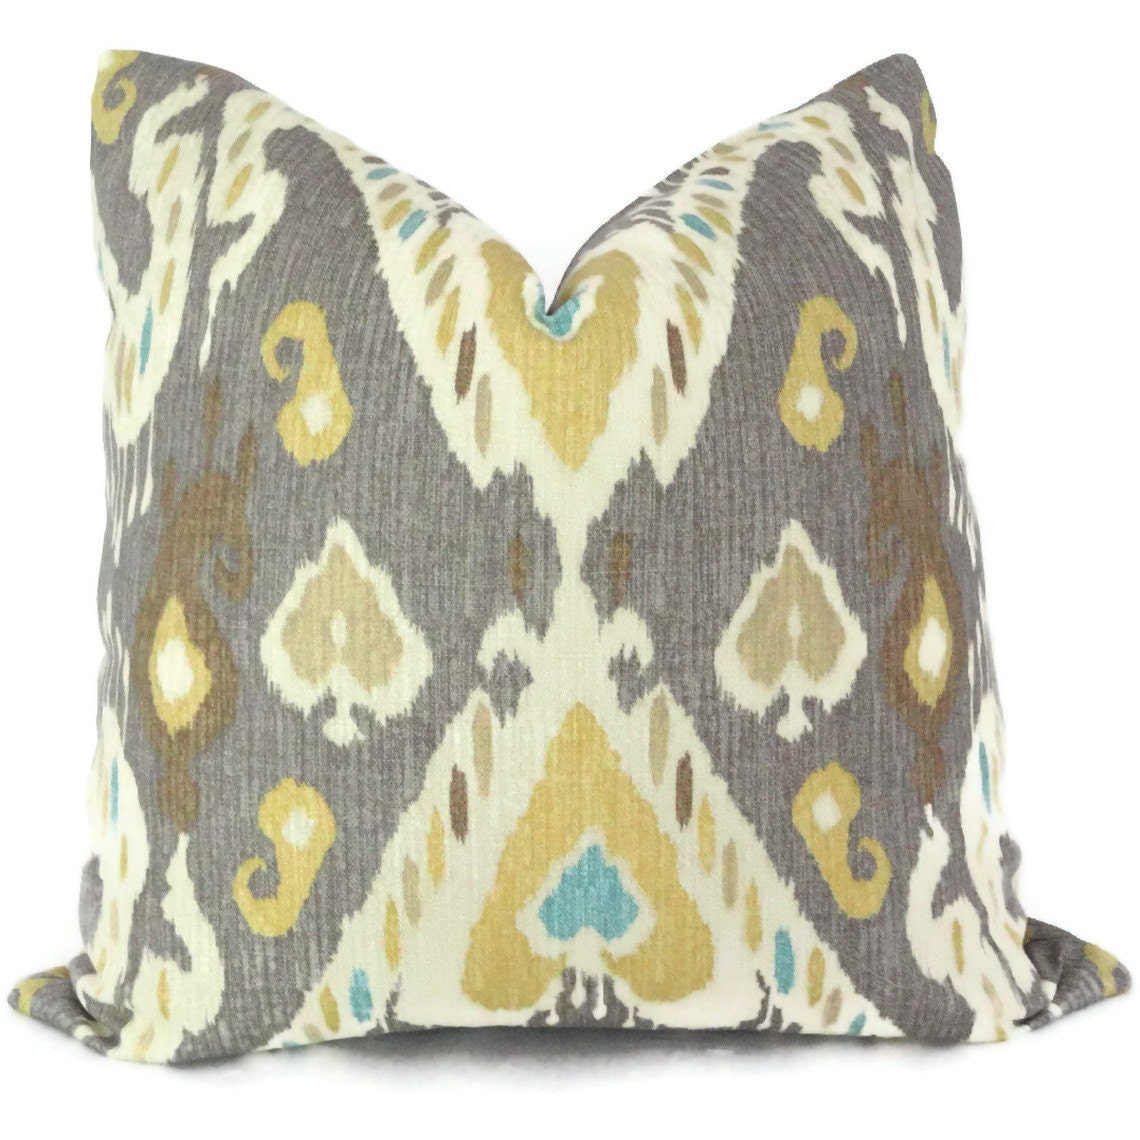 Throw Pillows Groupon : Yellow and Gray Ikat Decorative Pillow Cover Square by PopOColor